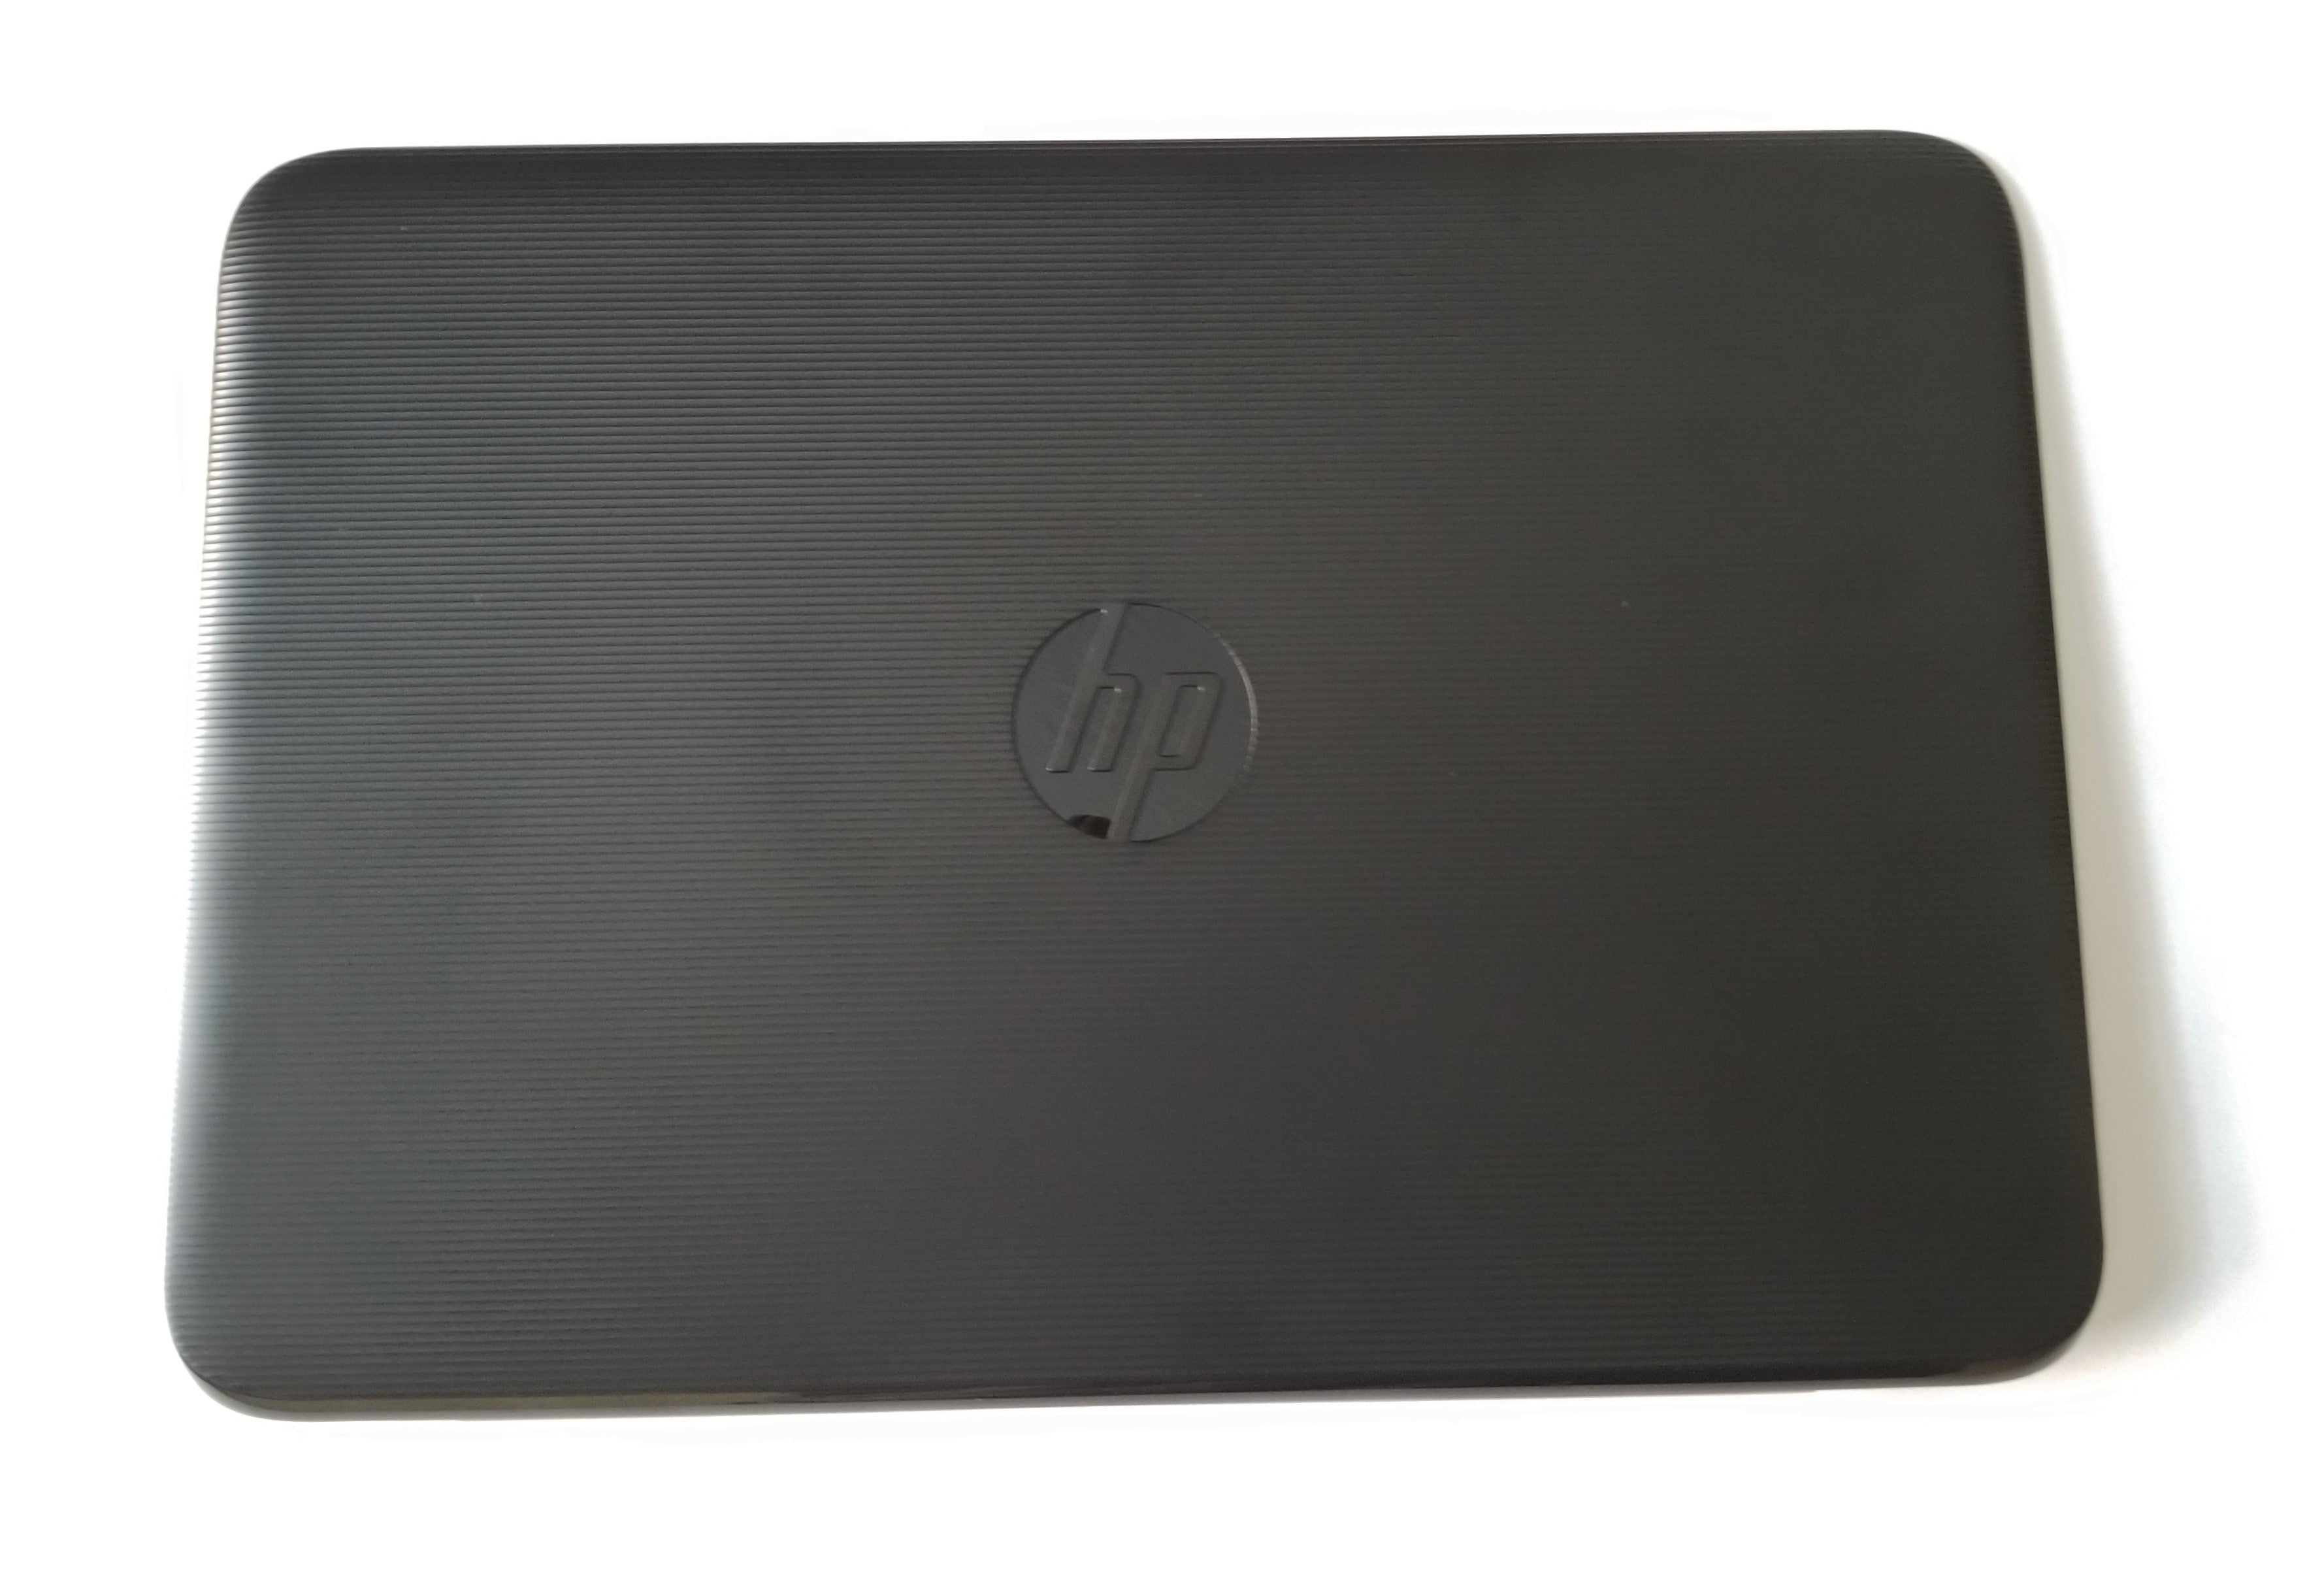 HP STREAM 11-AH117WM LCD Back Cover (black) - 913135-001